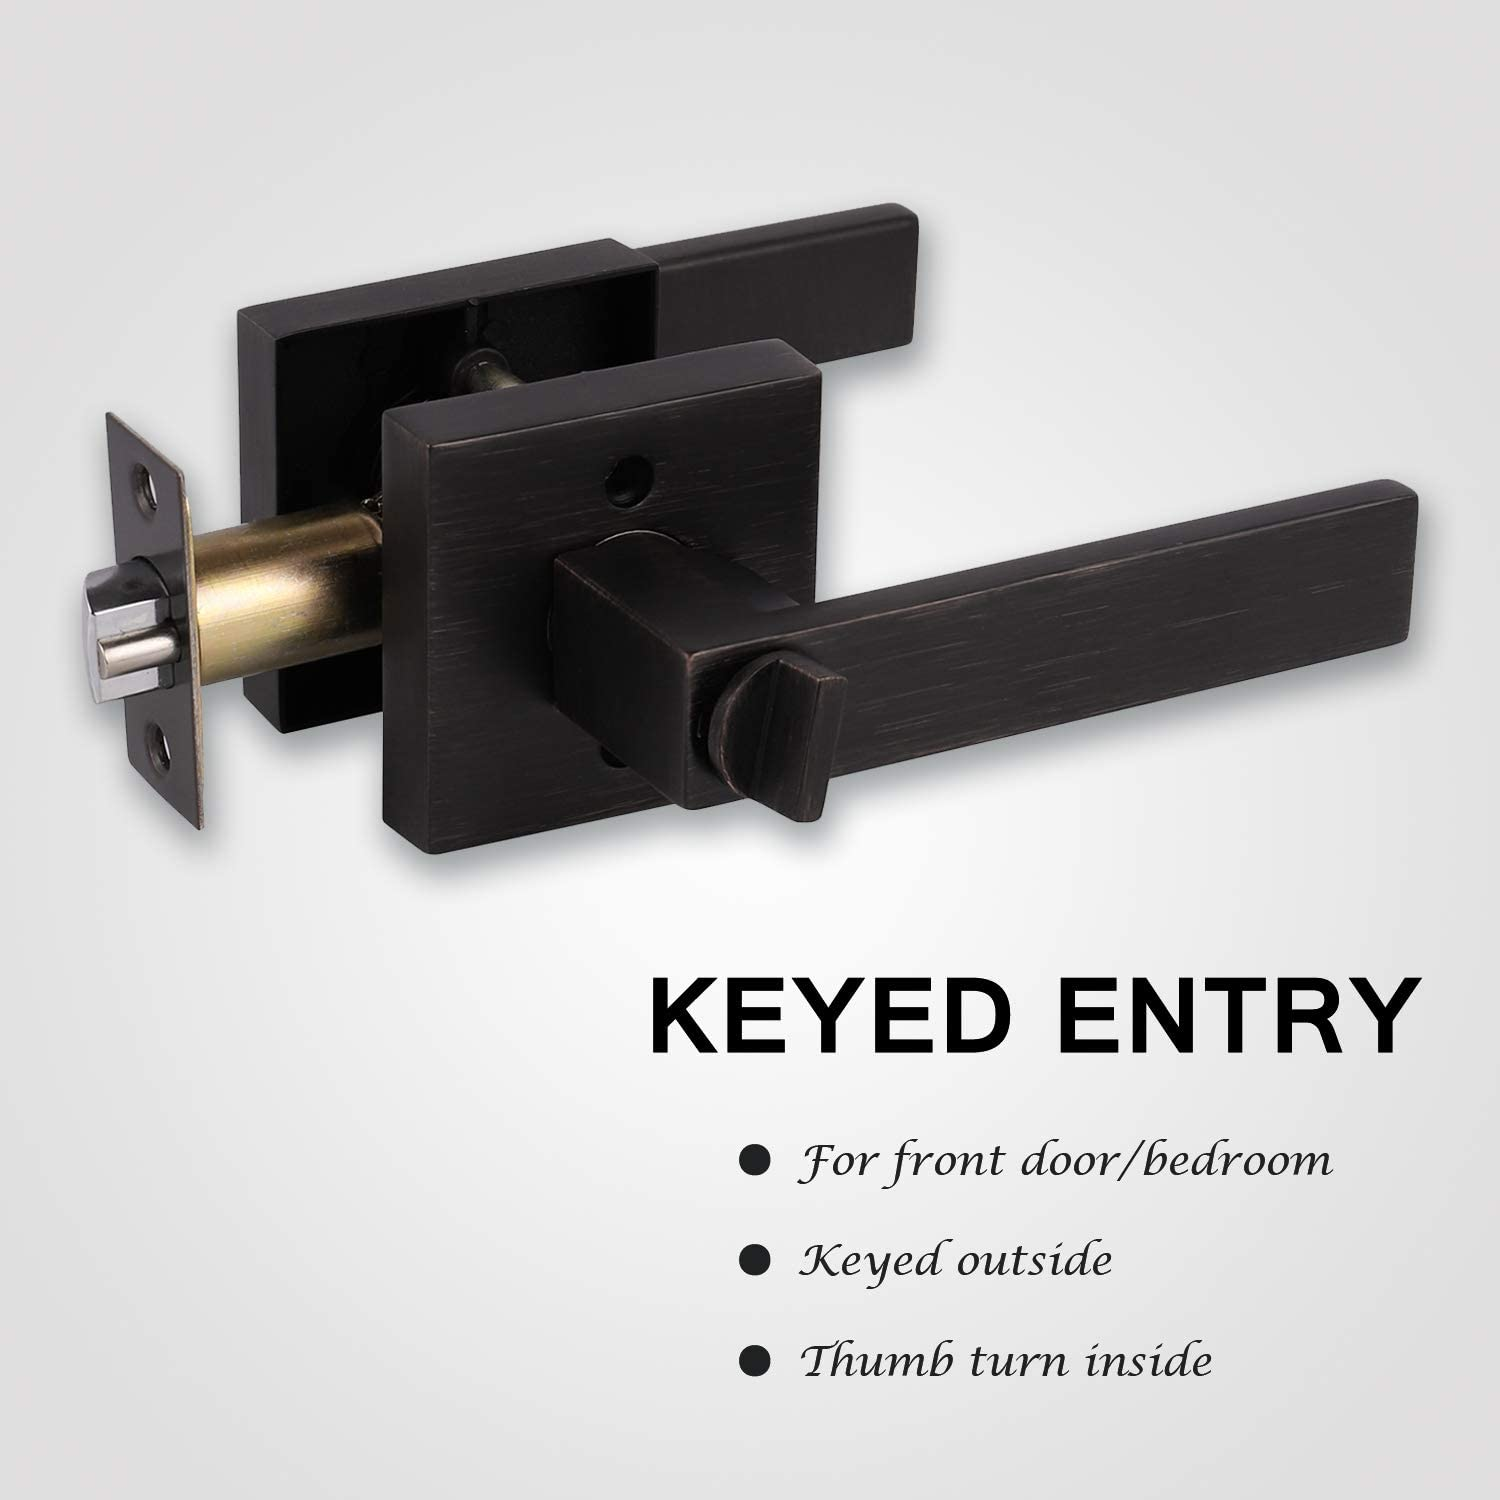 Oil Rubbed Bronze Finish KNOBWELL Heavy Duty Dummy Lever Set for Interior Door Single Handle Right//Left Handing 0.93 lb Heavy Duty Dummy Handle Leversets for Interior Doors